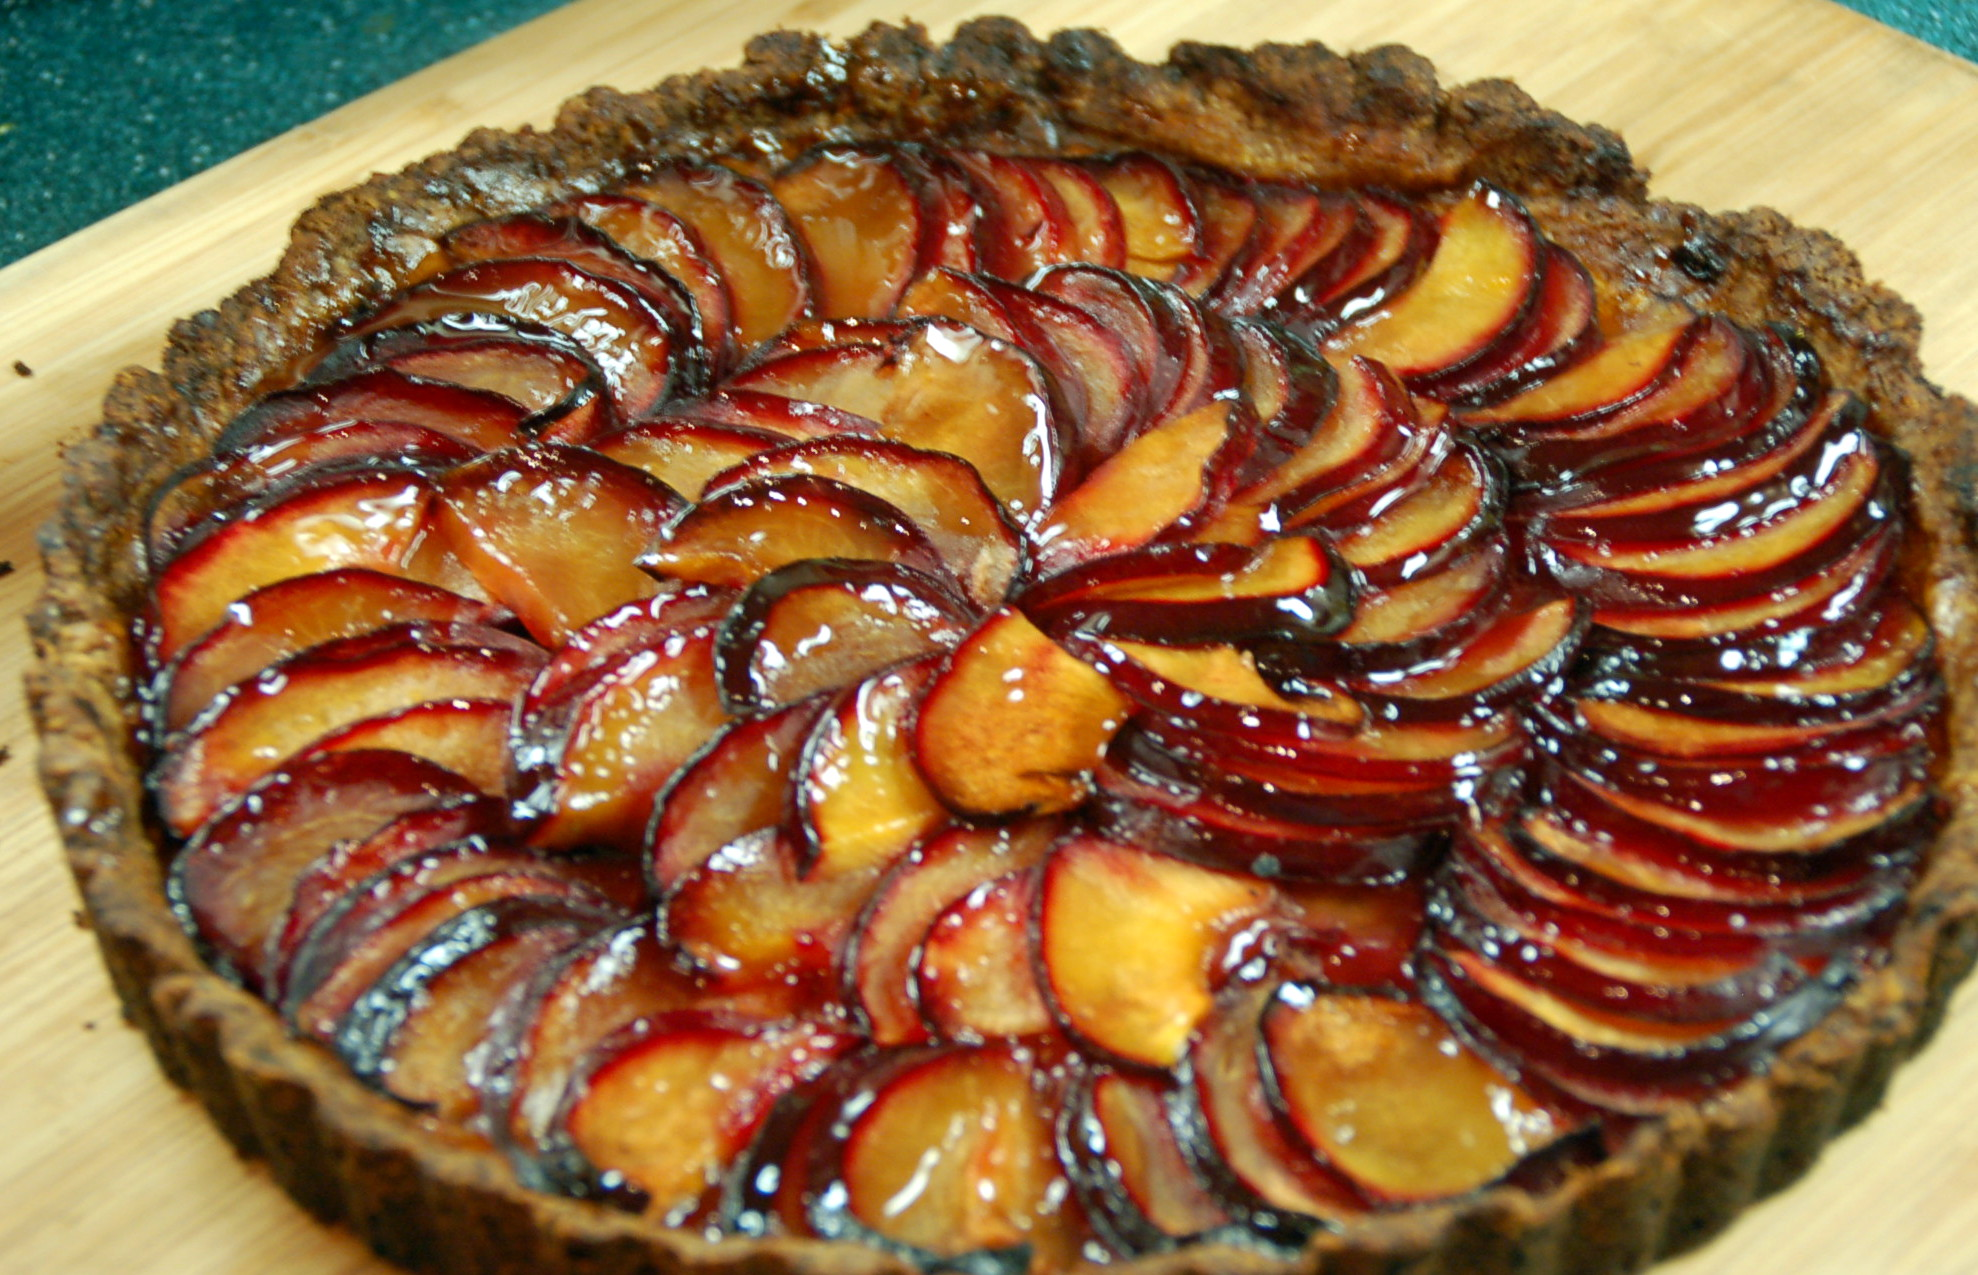 Plum Tart with Lemon Shortbread Crust